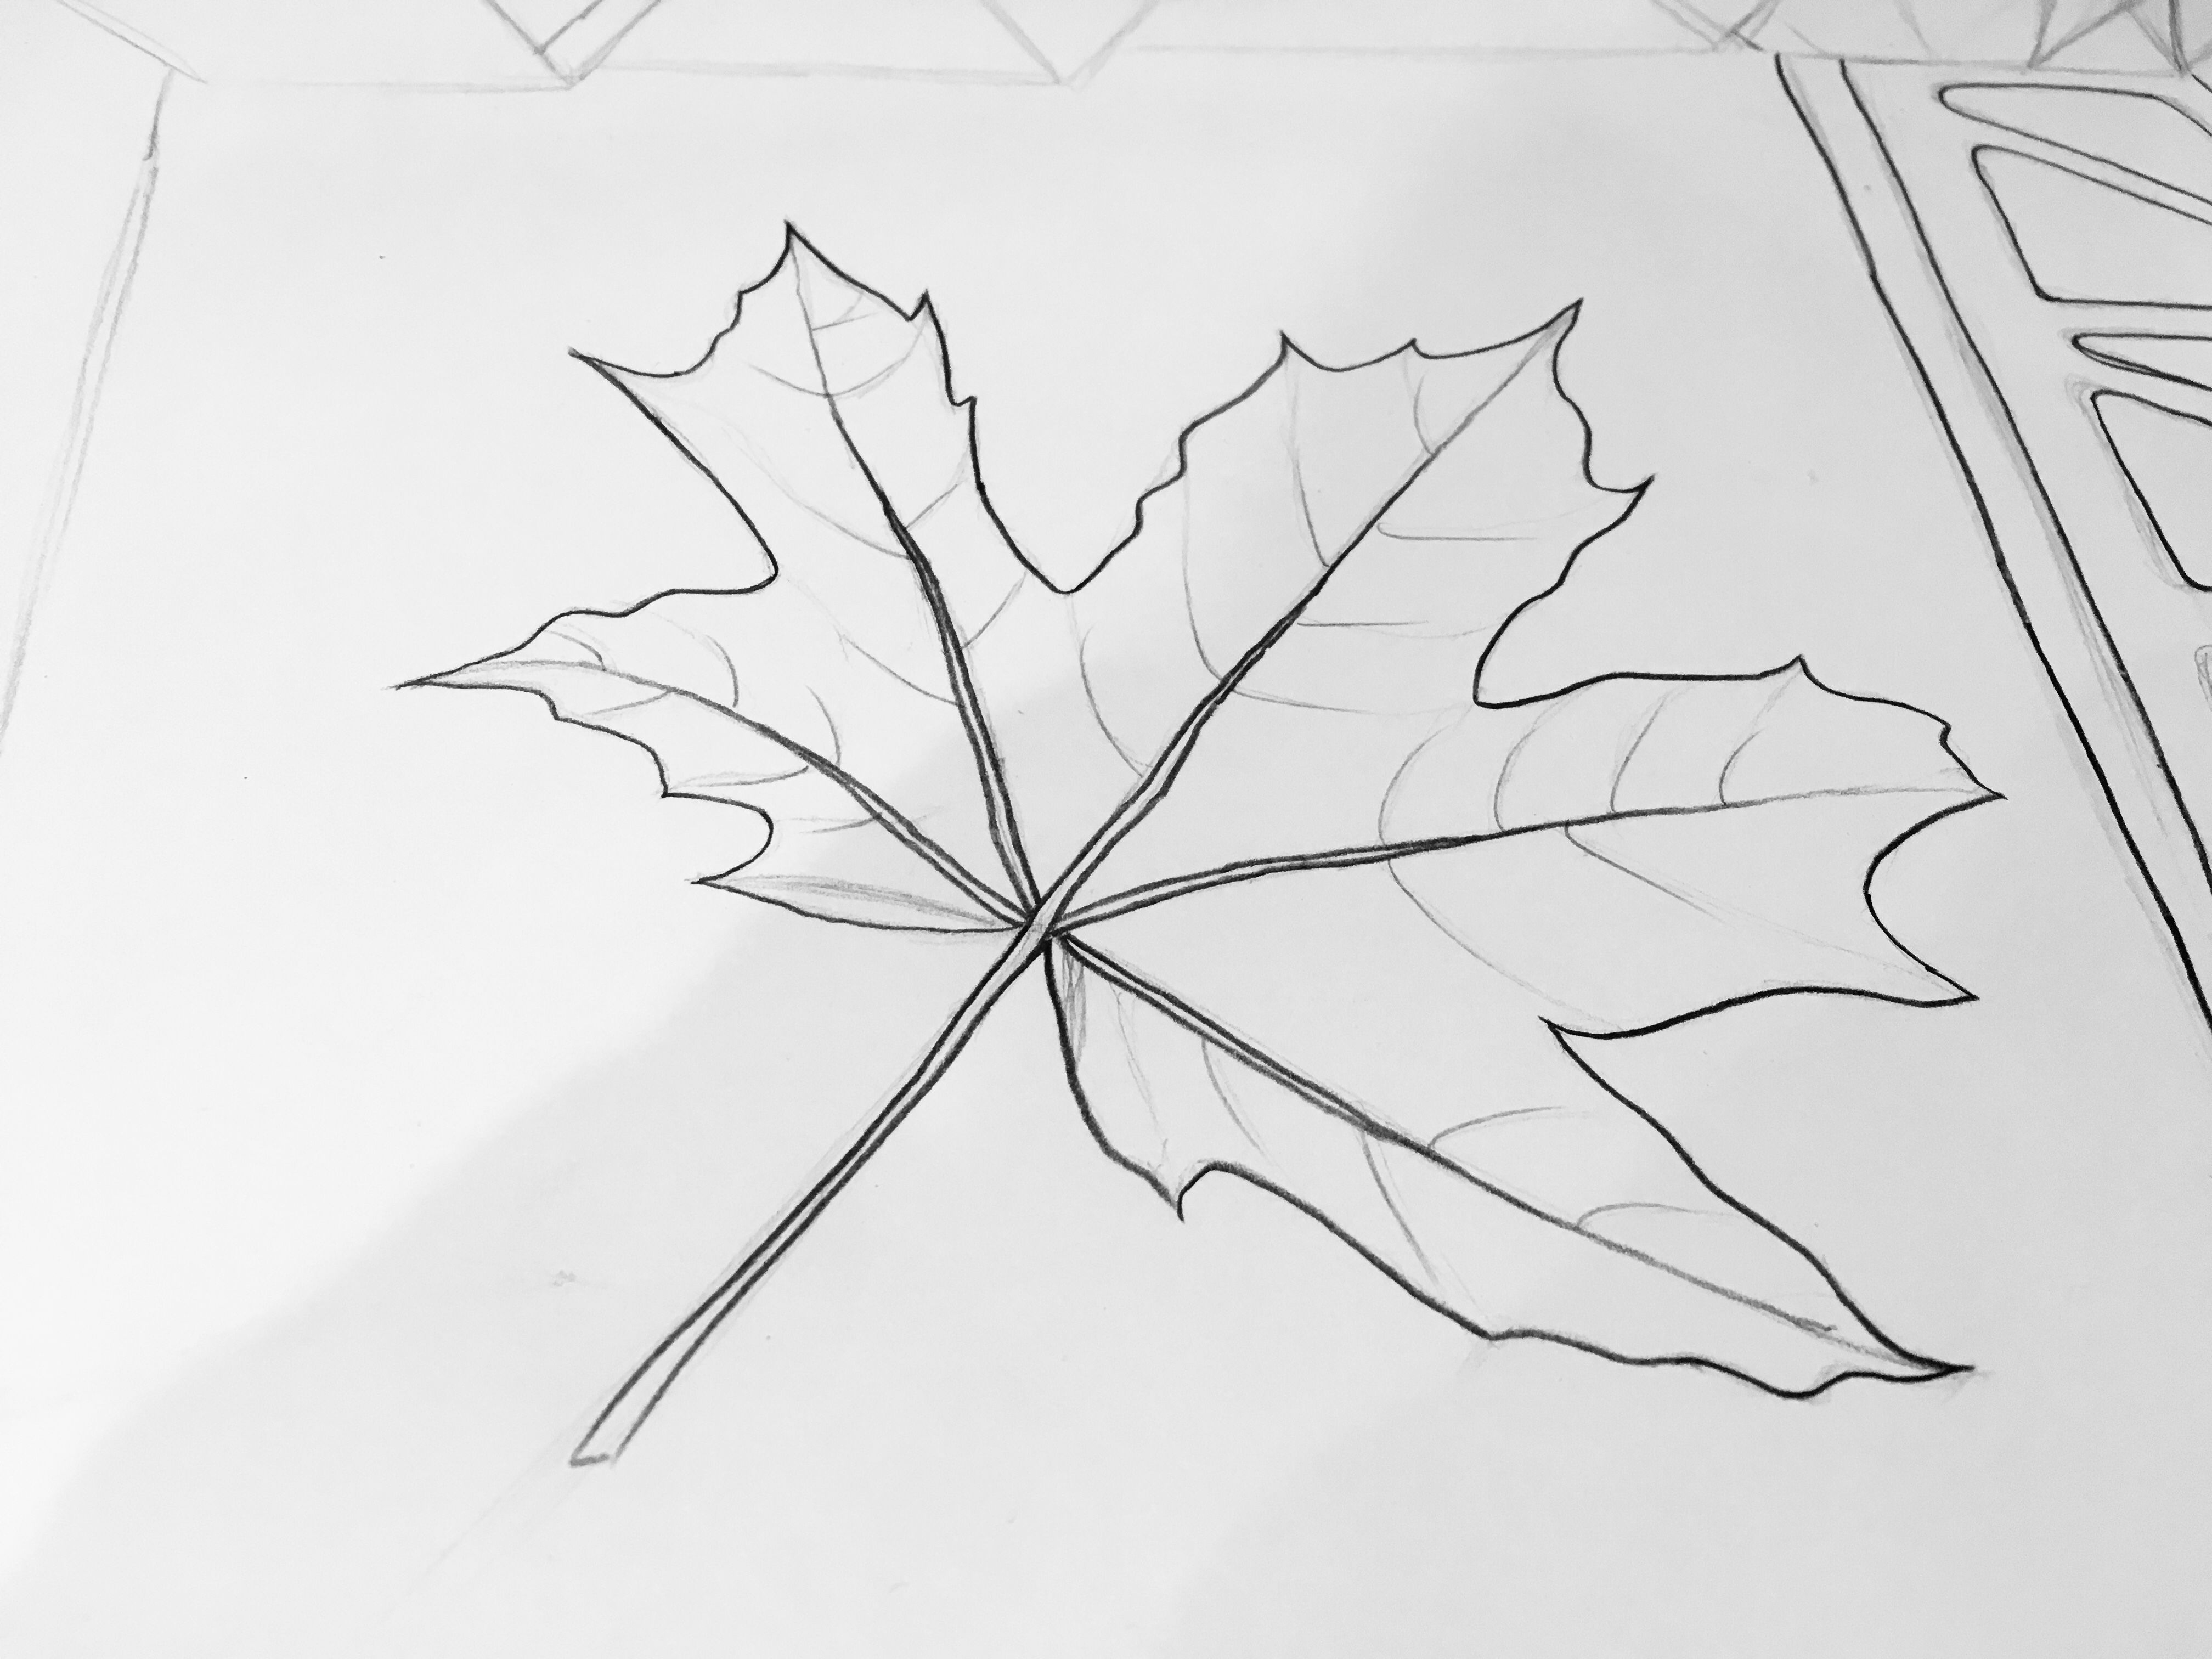 How to draw a maple leaf yourself